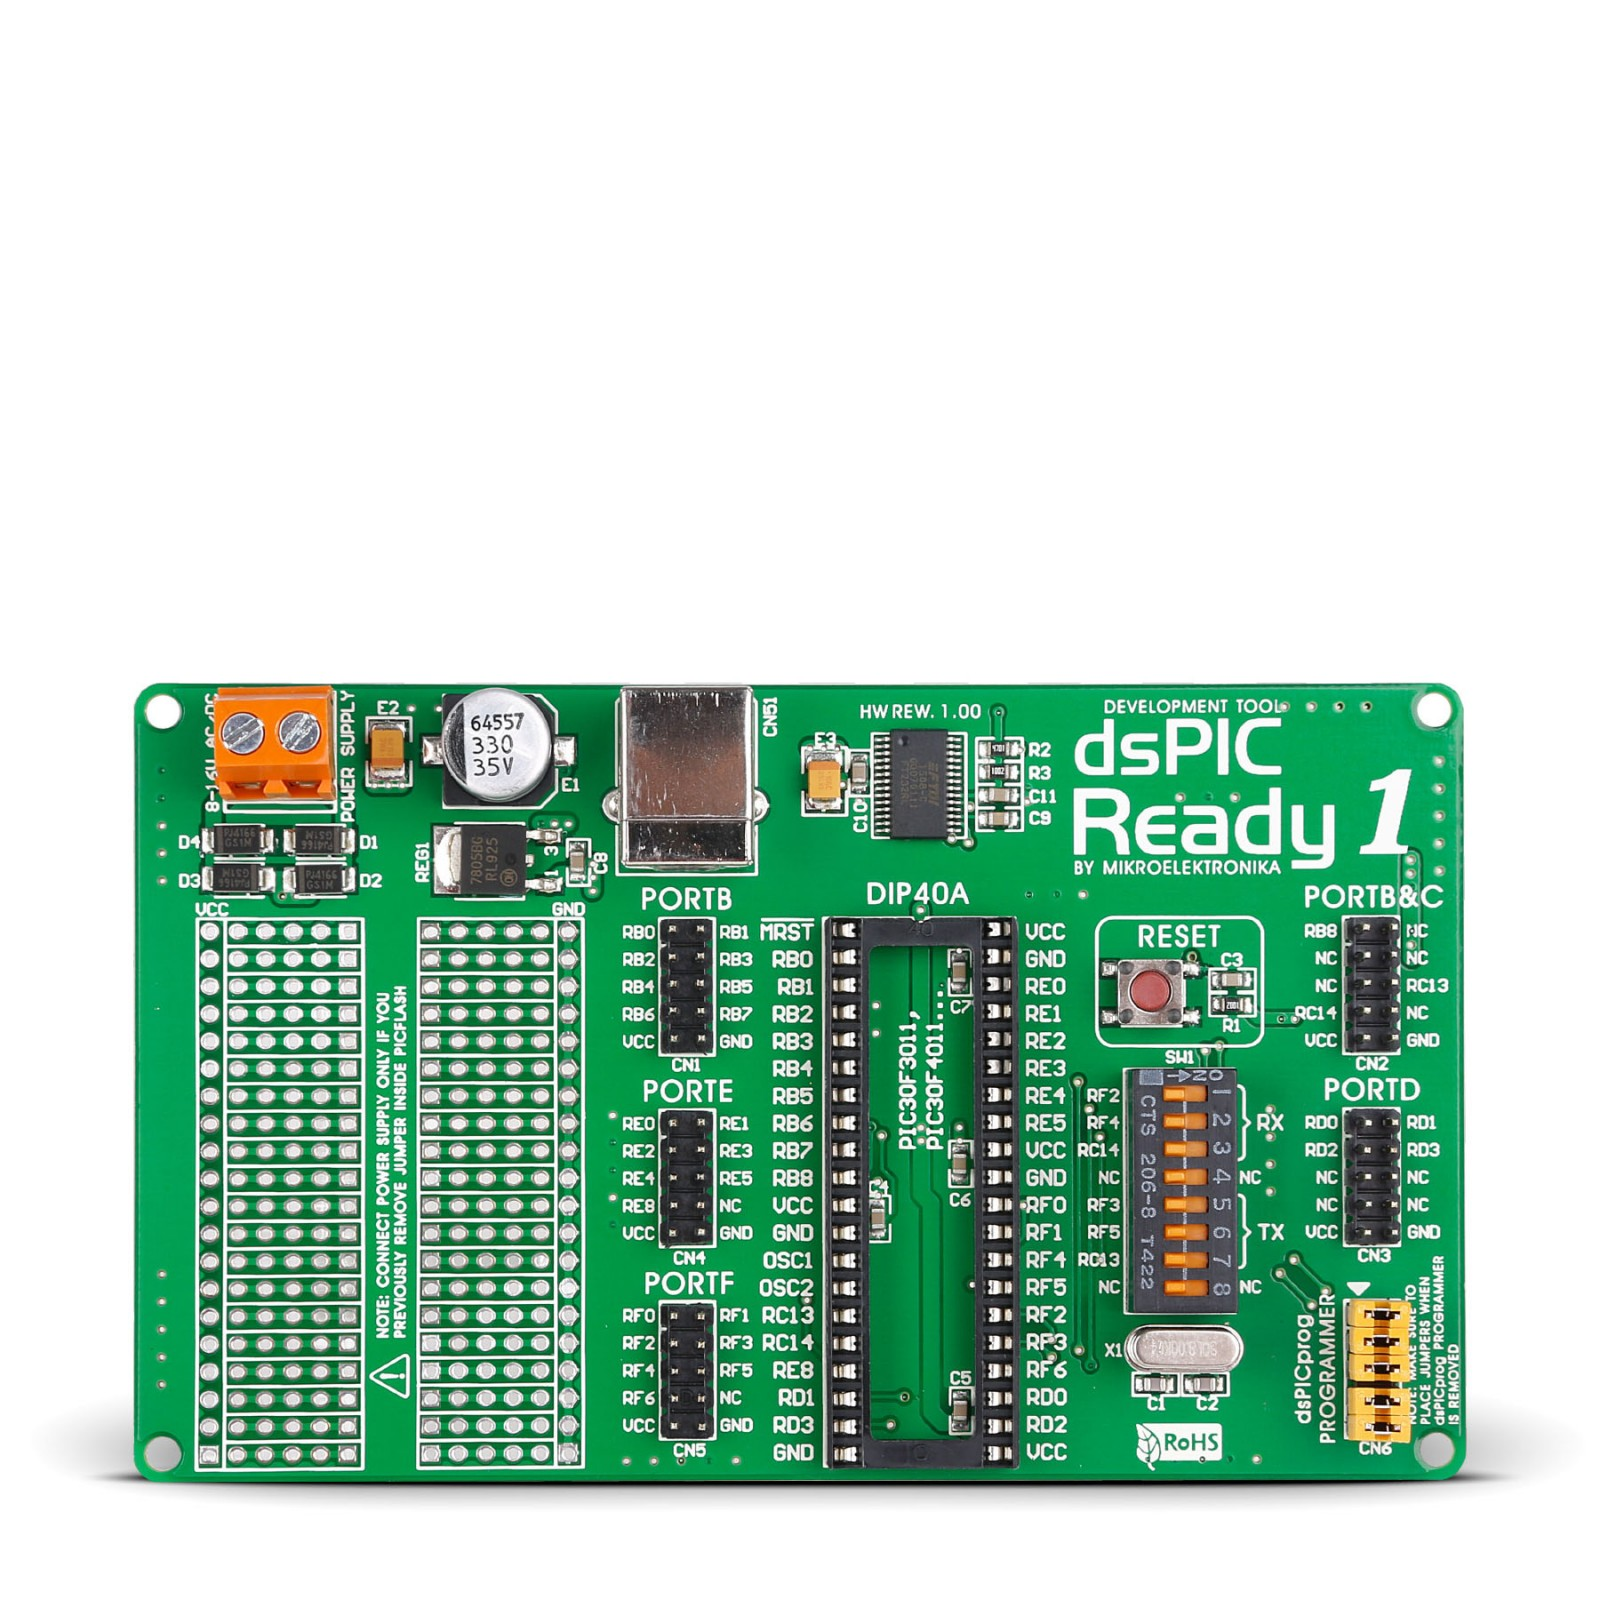 Dspic Ready1 Board 40 Pin Dspic30f3011 Dspic30f4011 Pic Programmer Schematic Together With Serial Mgctlbxnmzp Mgctlbxv5112 Mgctlbxlc Mgctlbxpprestashop